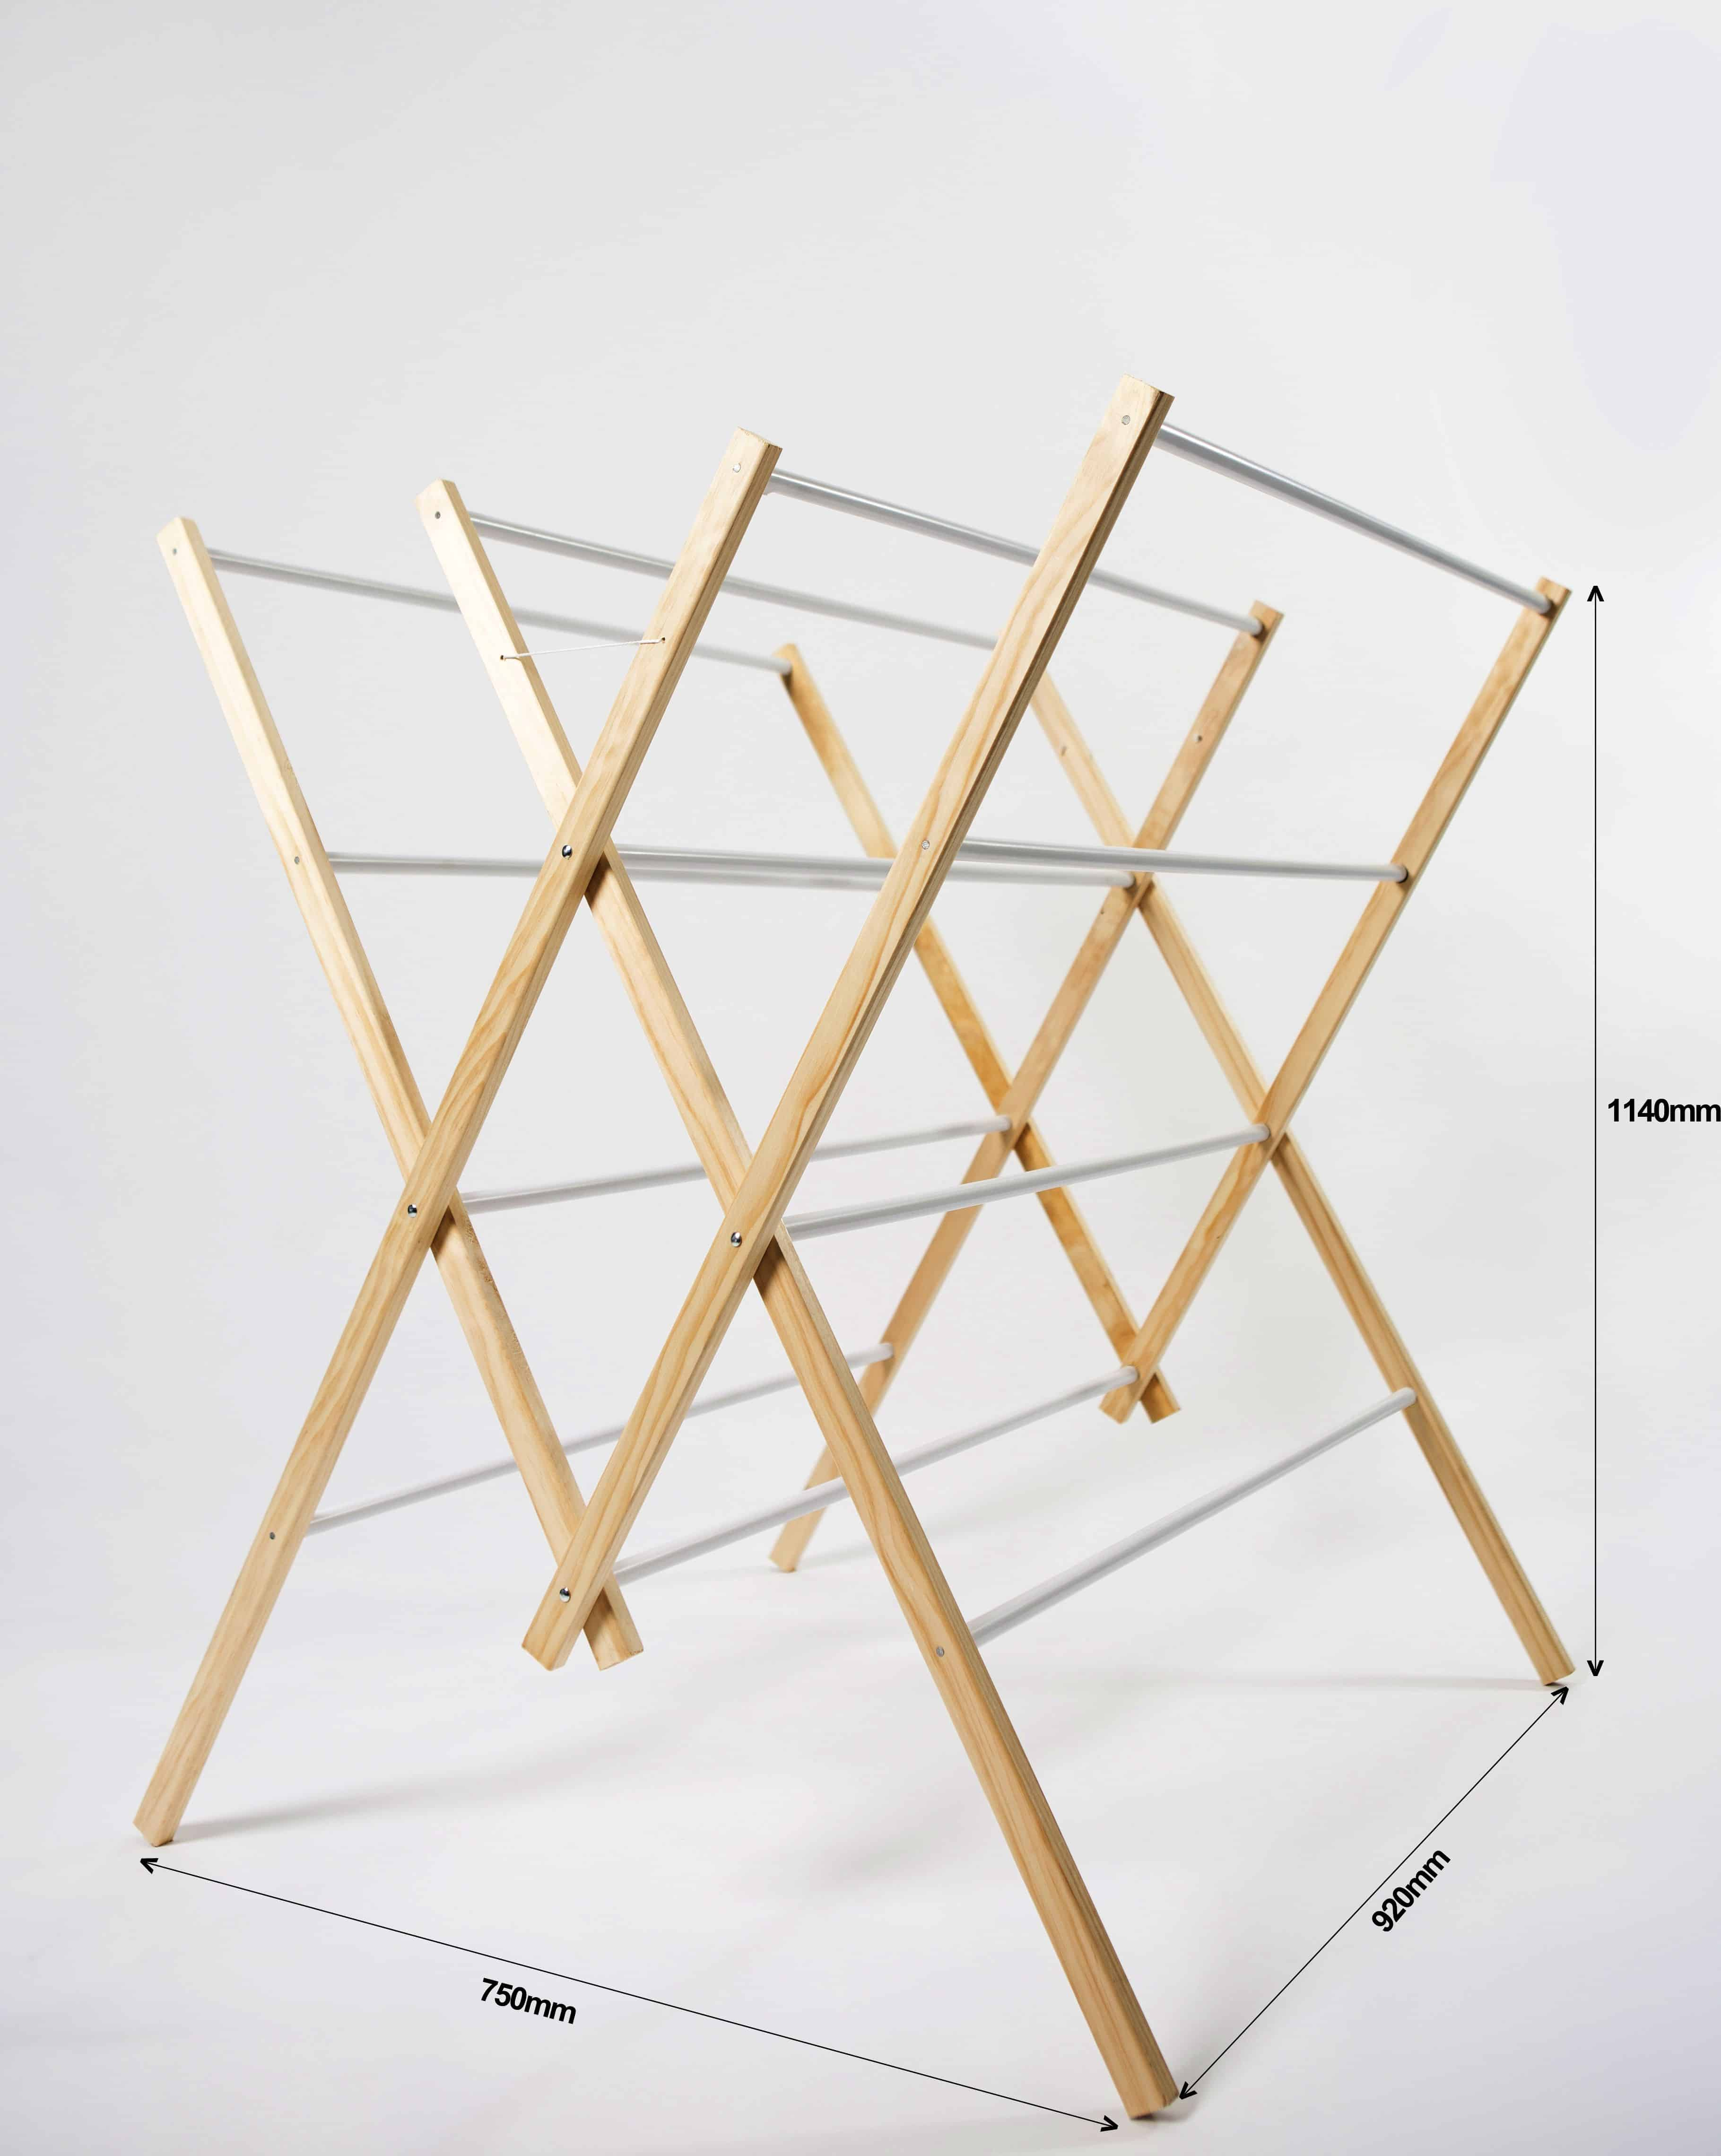 12 Rail Wooden Clothes Airer Clothes Line Rack Horse Foldable Australian Made Hendra Hardware